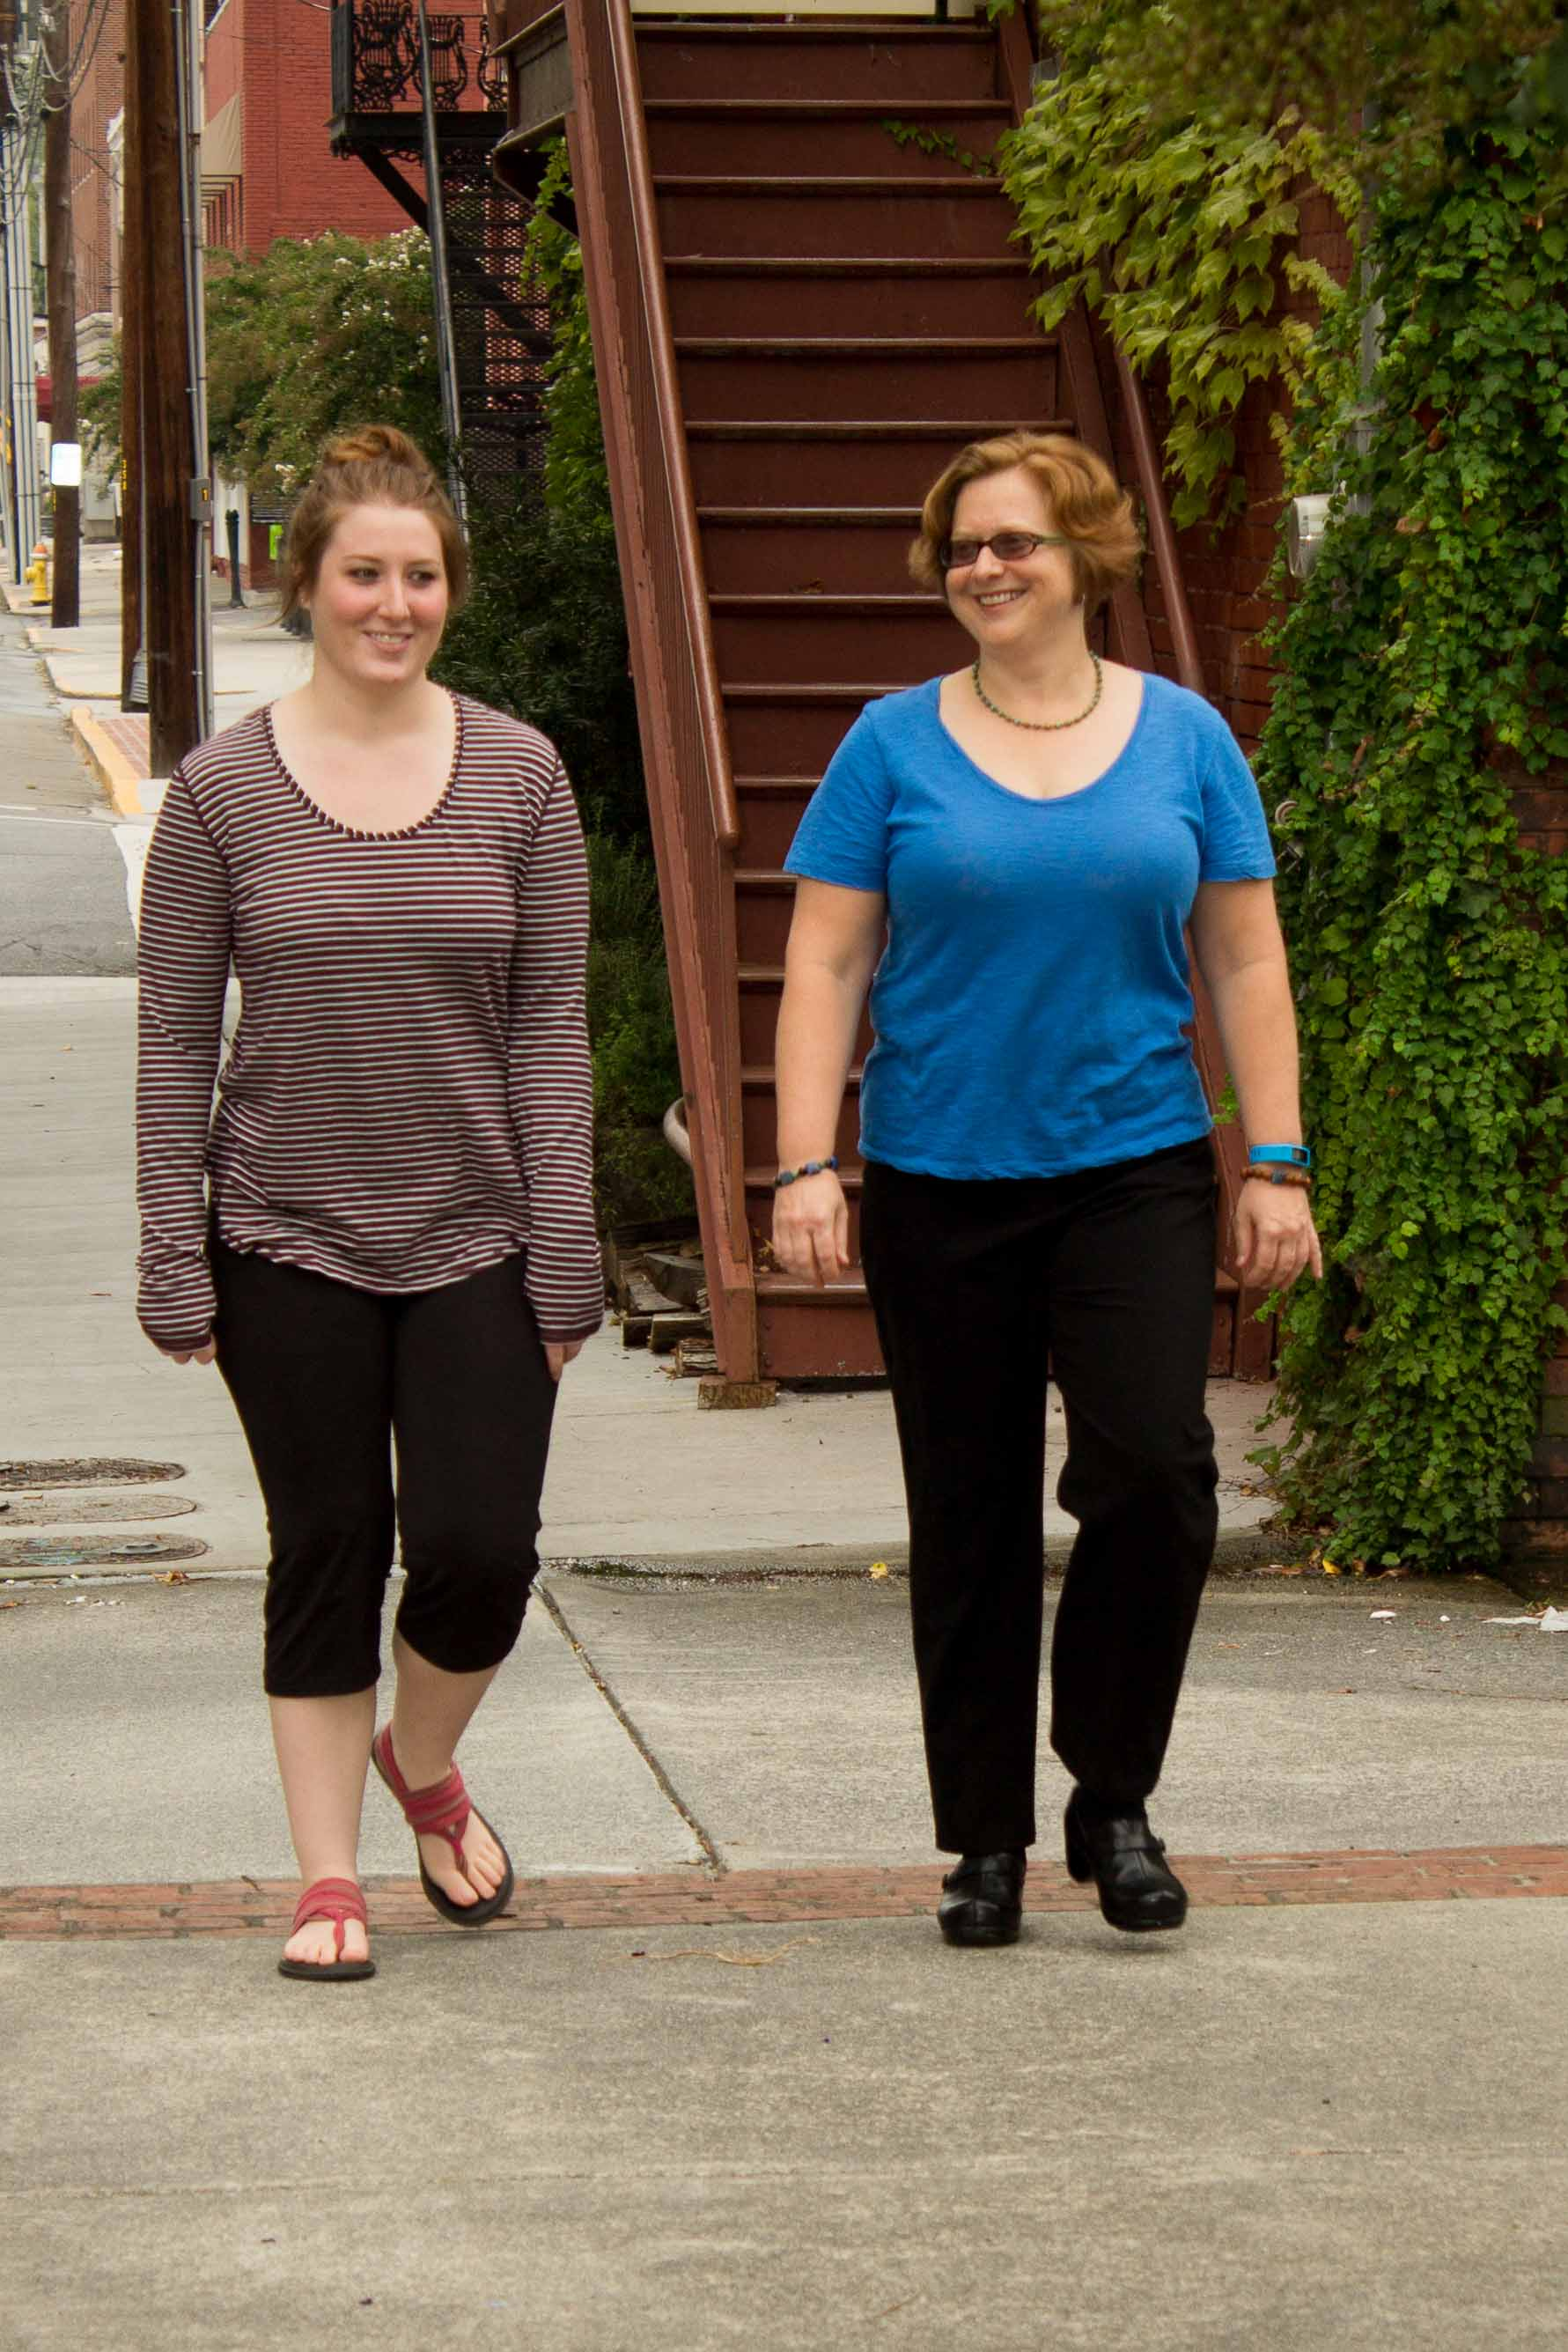 Ellen Thompson and client walking during a counseling session